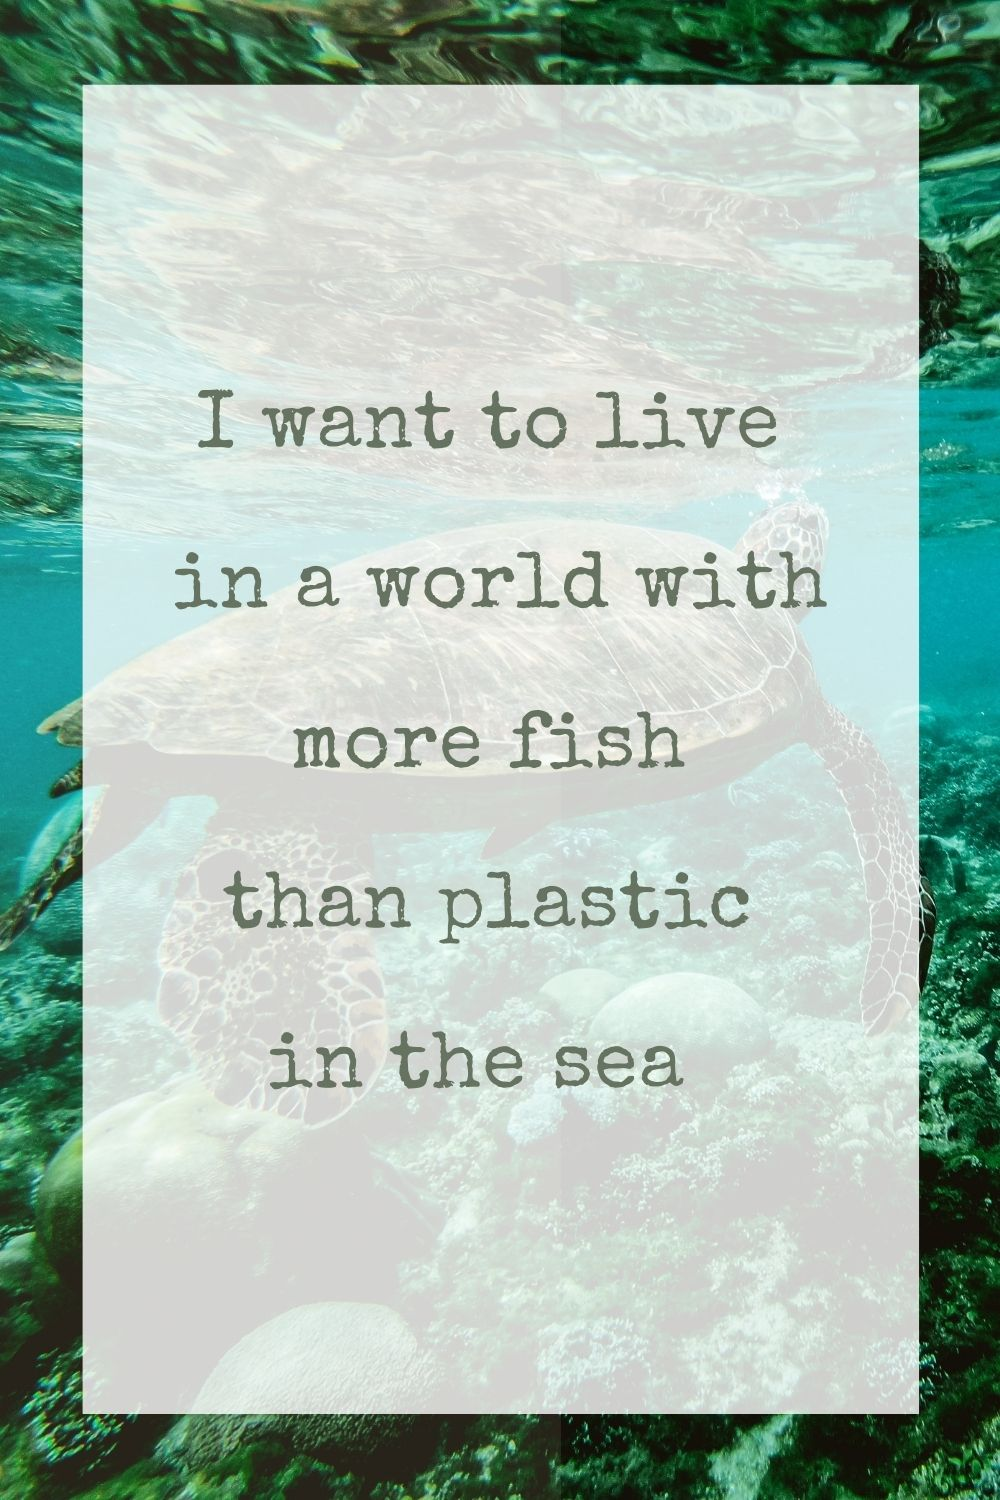 I want to live in a world with more fish than plastic in the sea